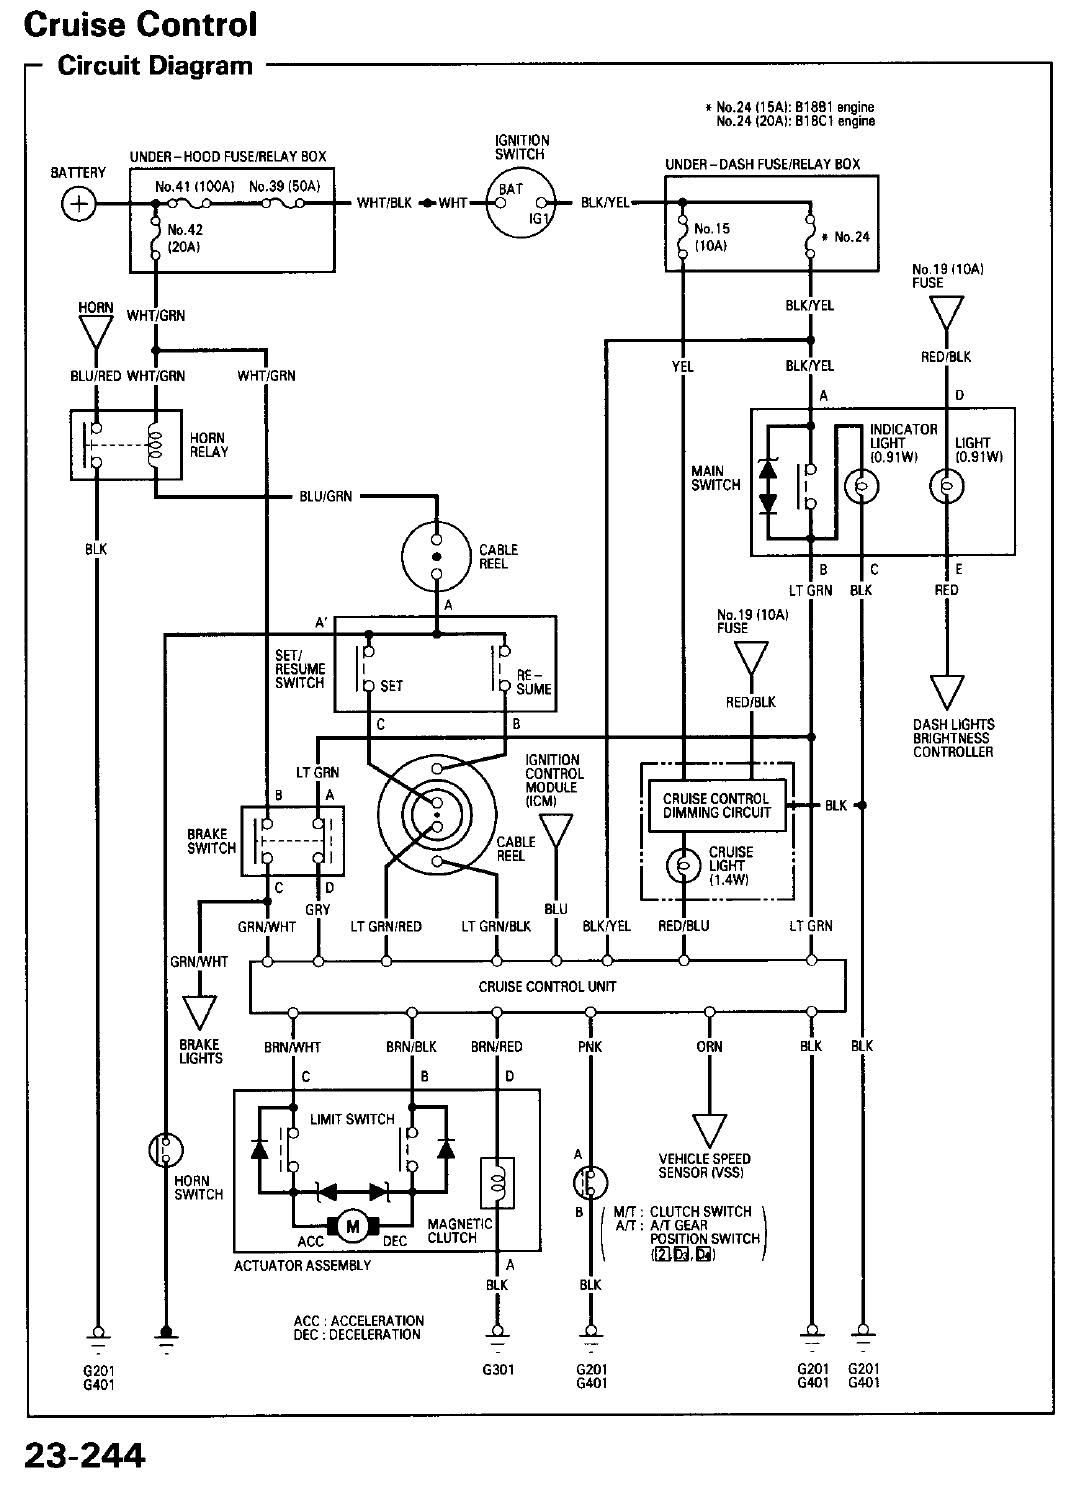 block diagram for cruise control system